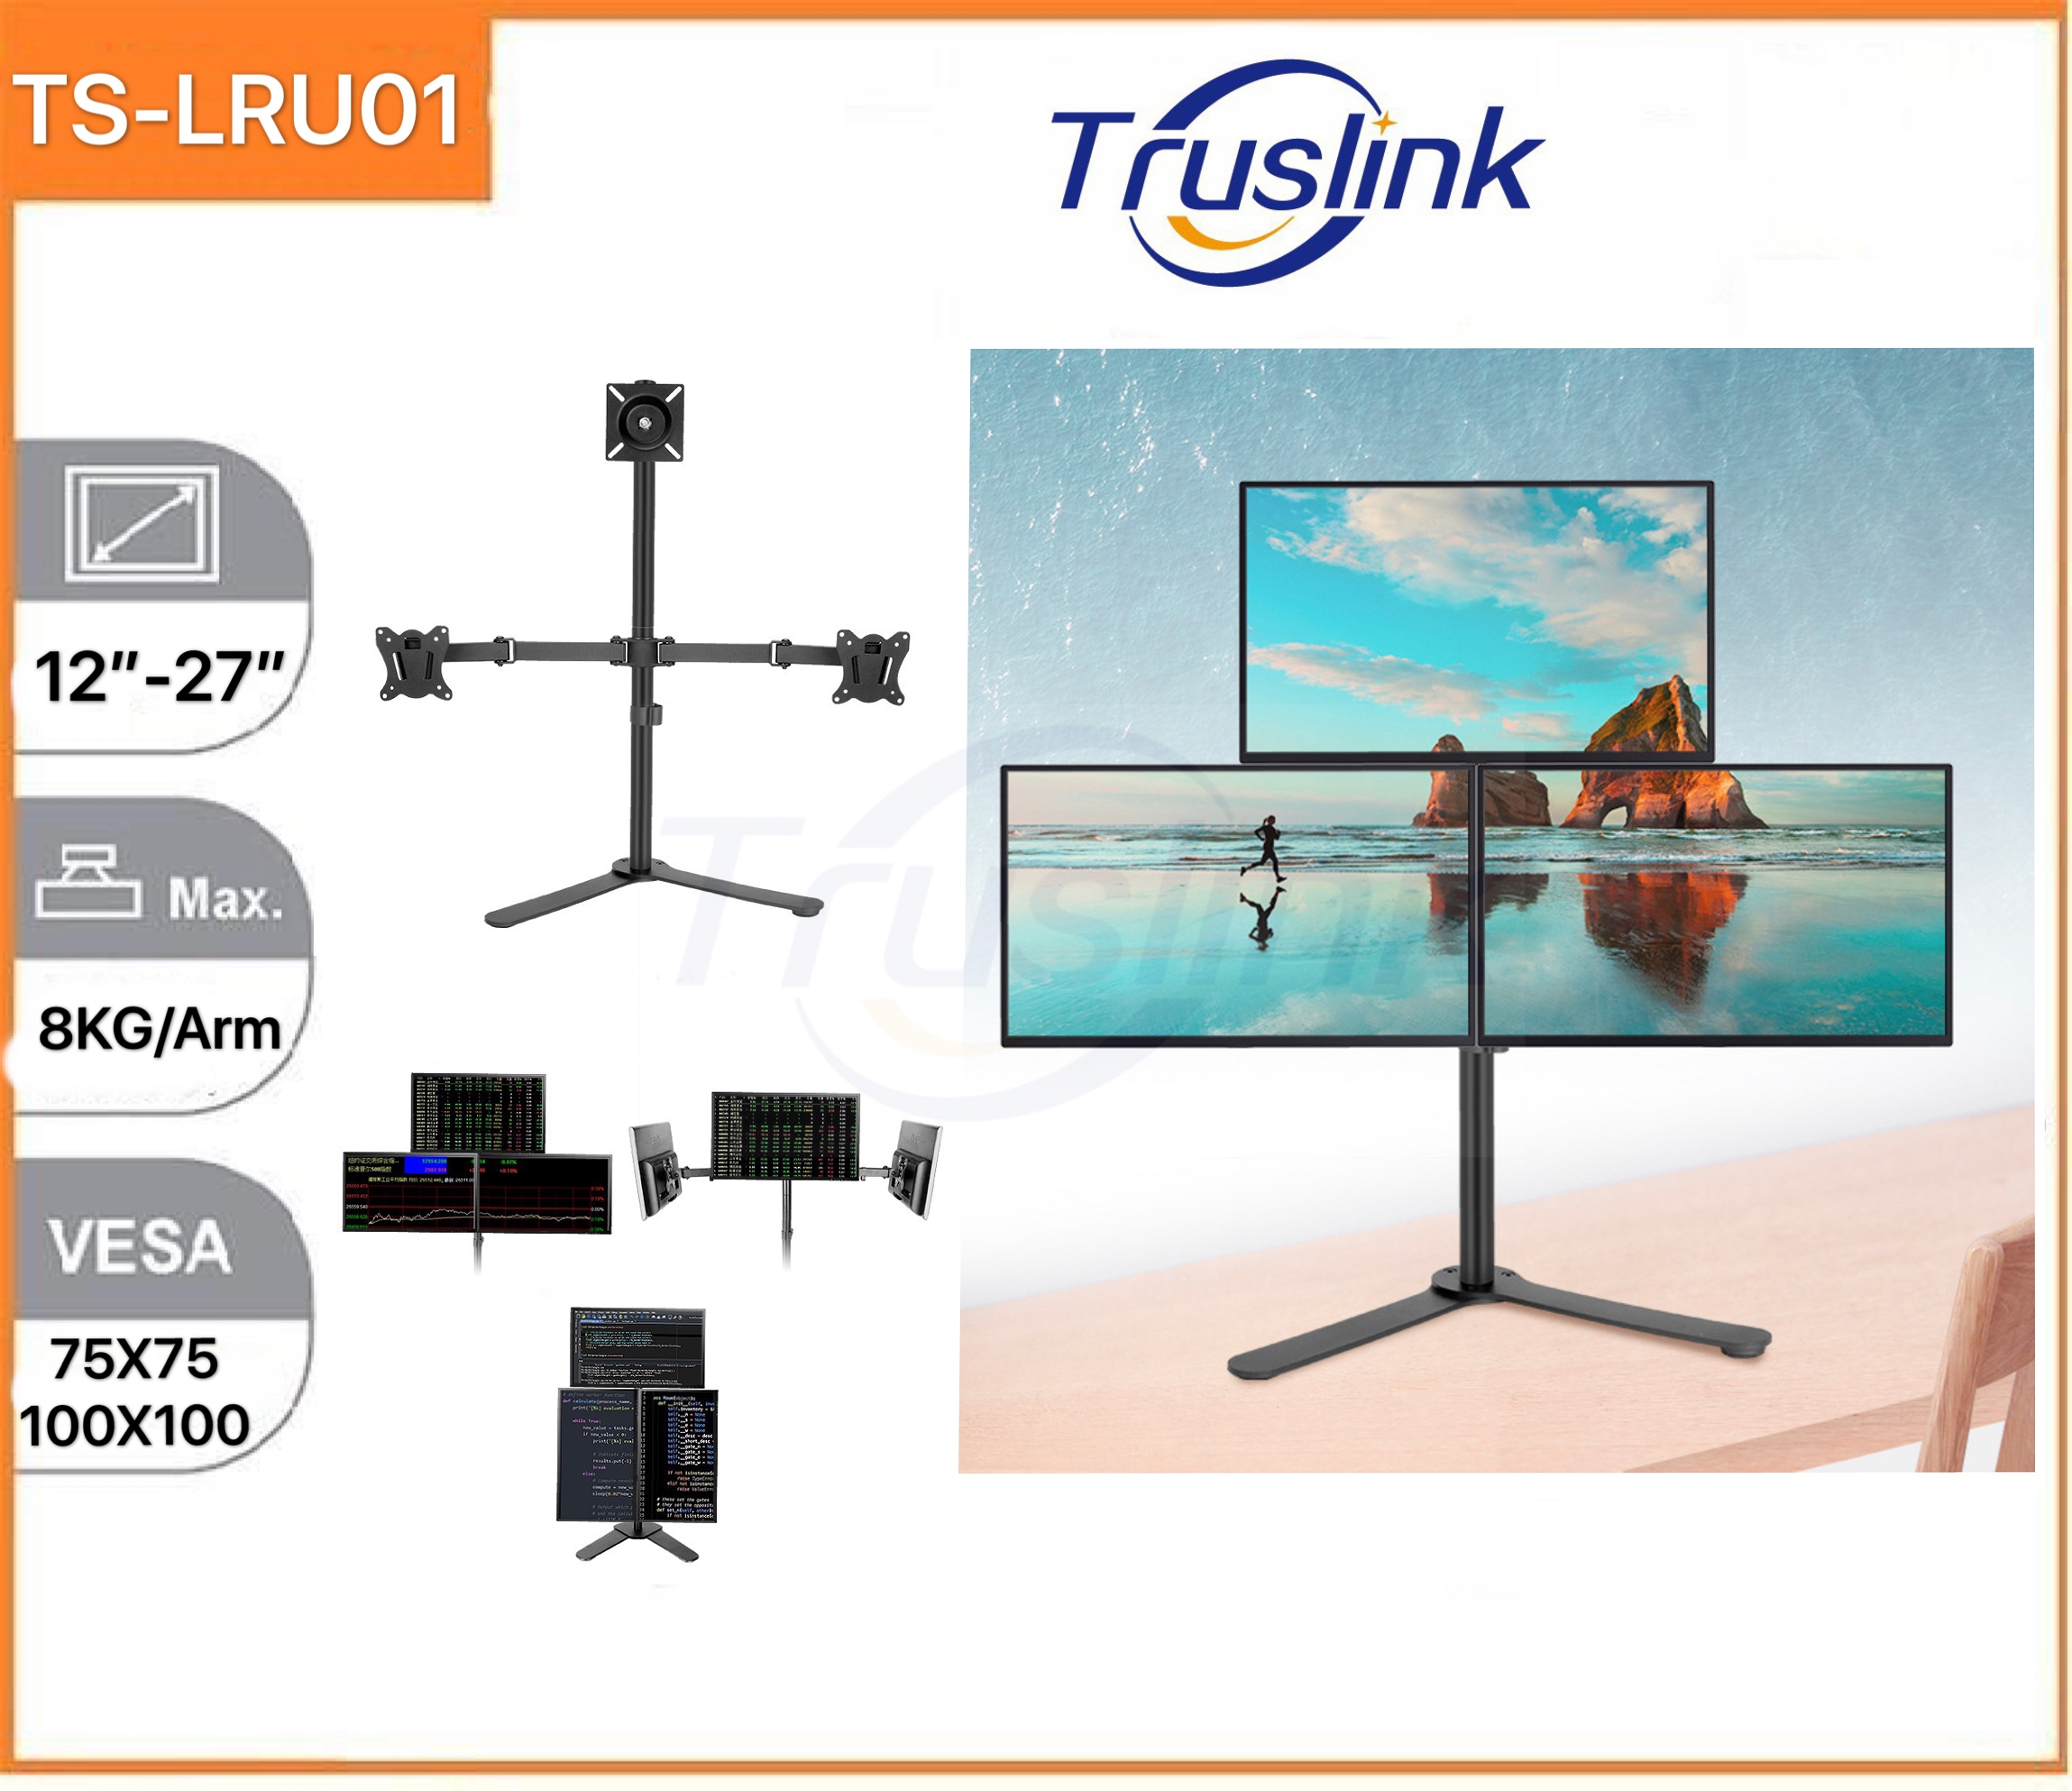 [SG Seller]Truslink Triple Monitor Desk Stand Table Clip Height Adjustable Full Motion Two Arm Monitor Mount for Two 12 to 27 inch LCD LED Screens with Swivel and Tilt, 8KG Per Arm Up Down Tilt 90° Adjustment